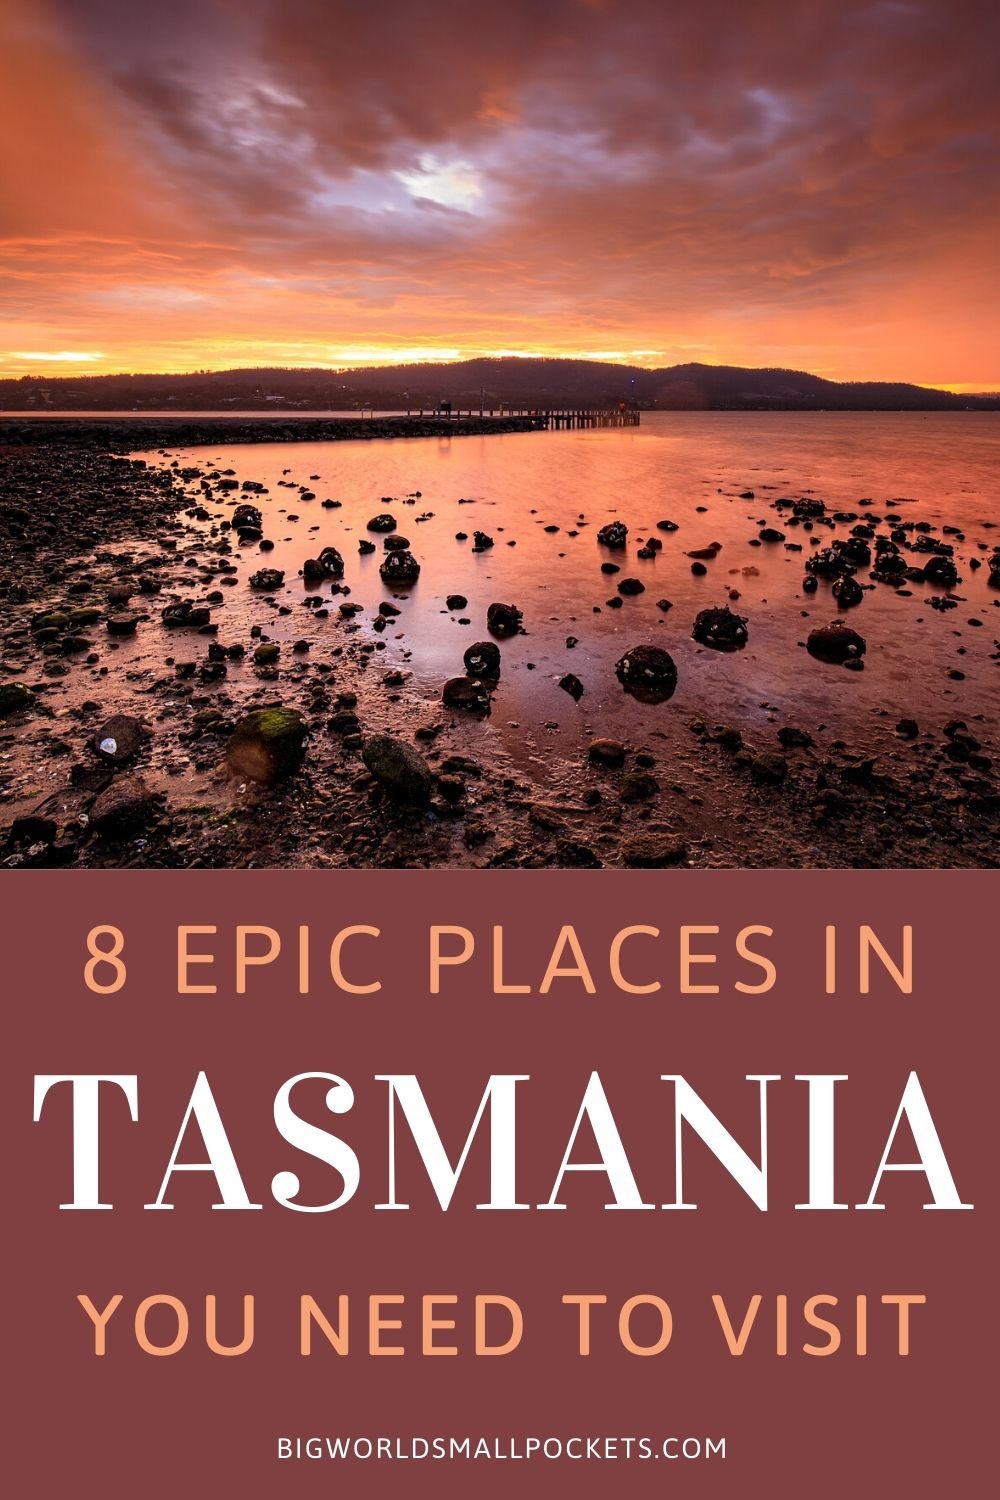 8 Epic Places in Tasmania You Must Visit!